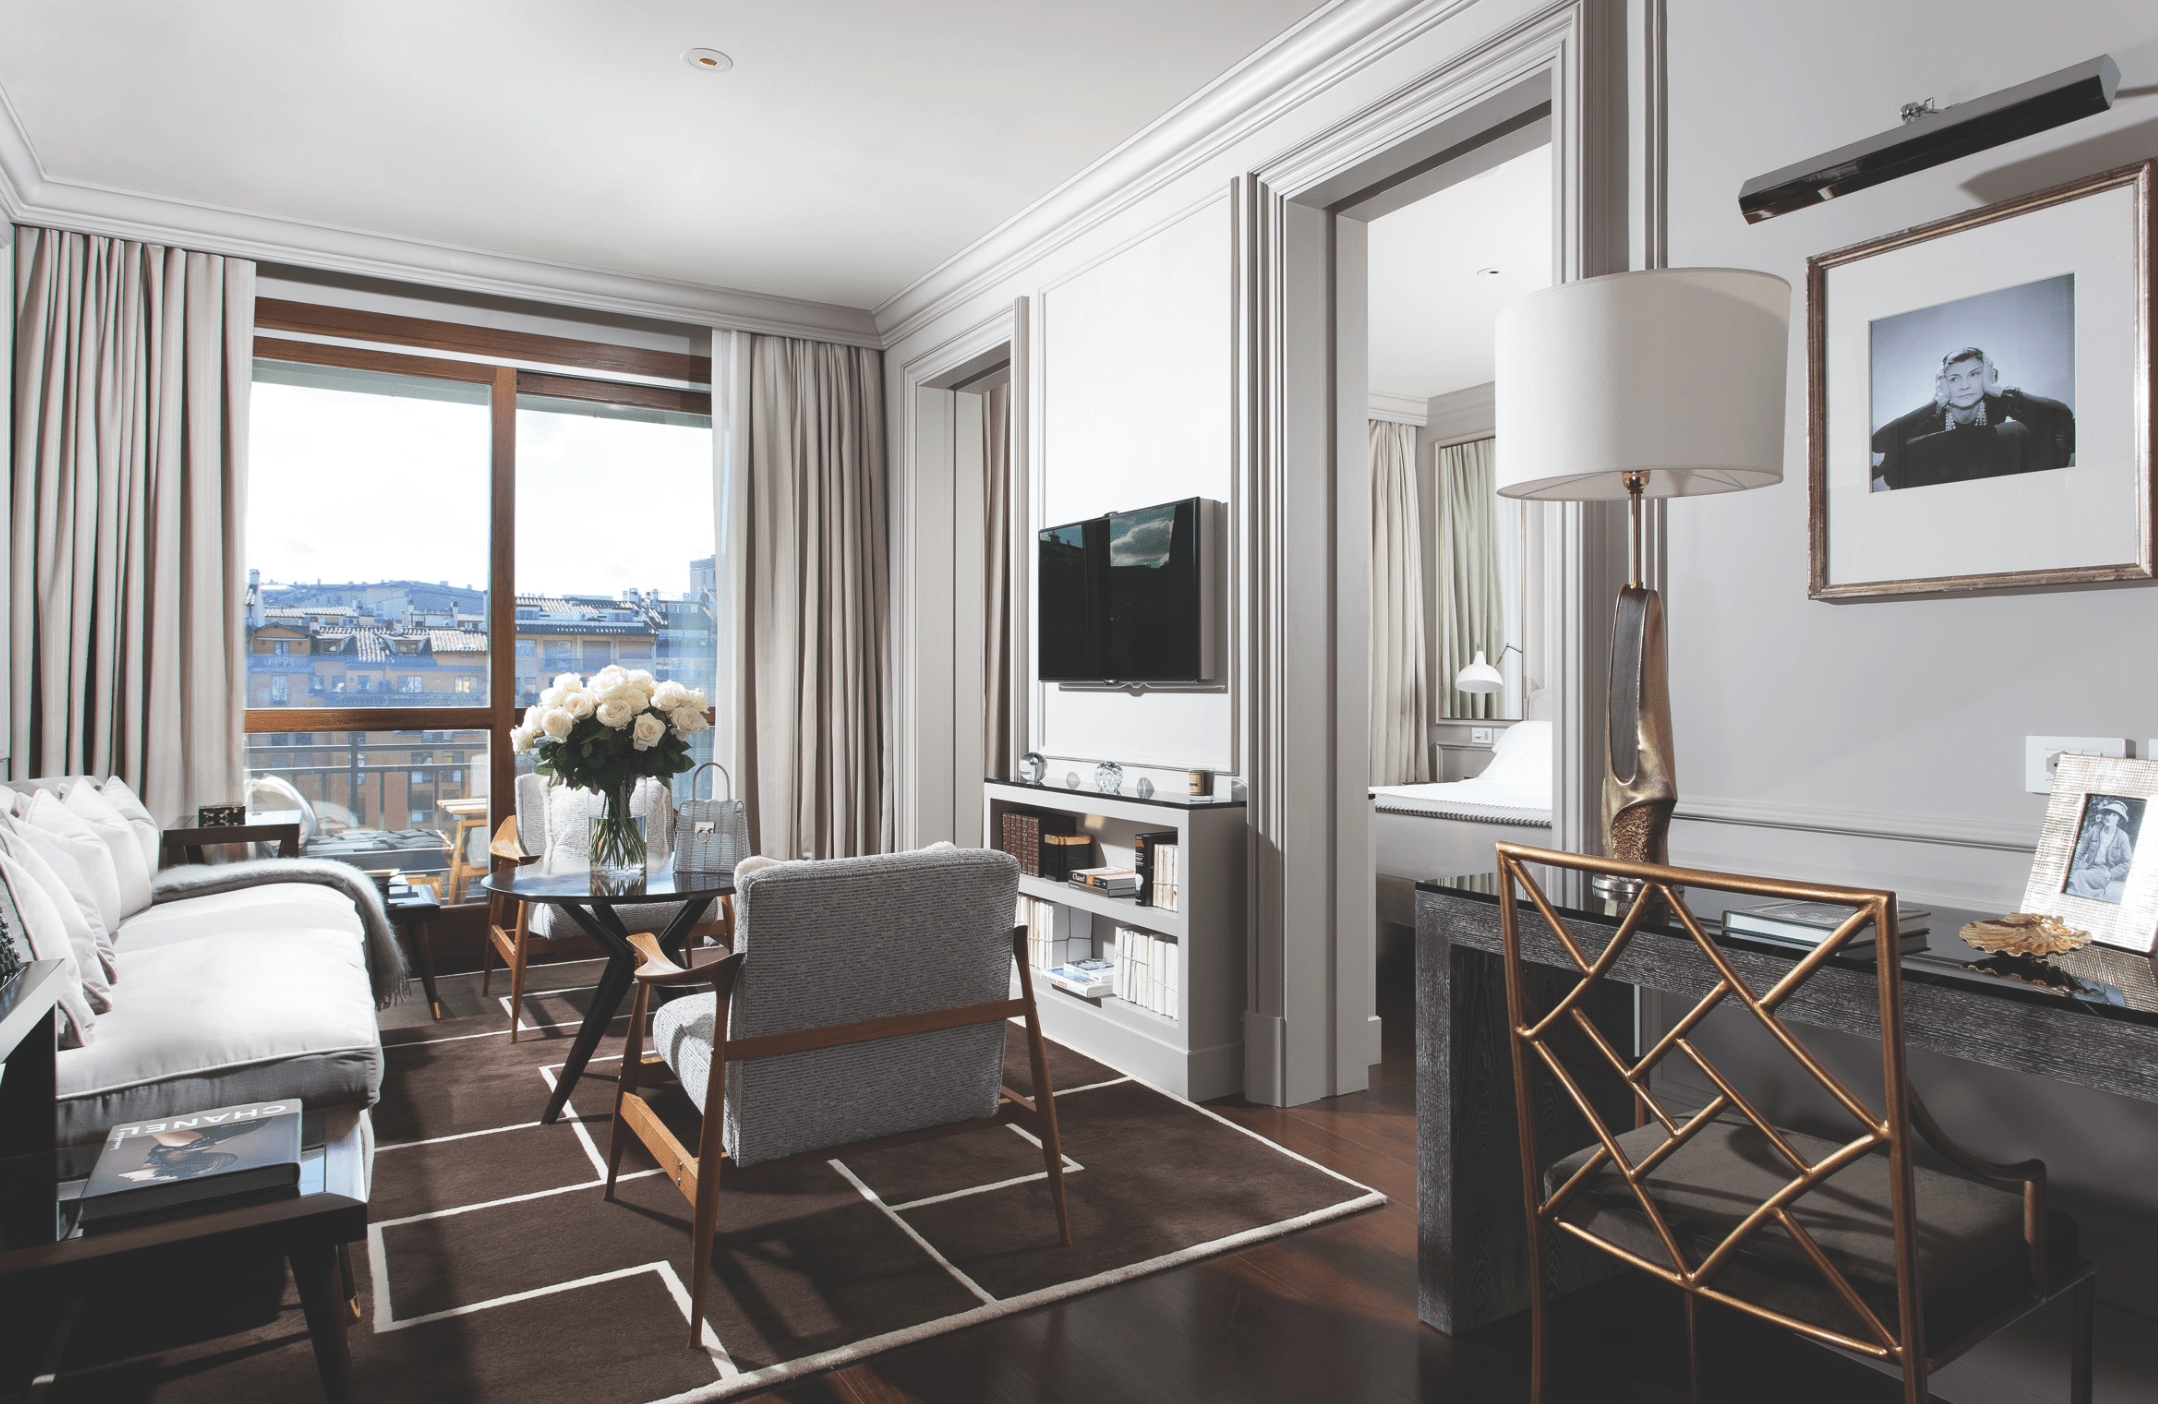 9 new hotels in europe 39 s culinary capitals food republic for Boutique hotel florence